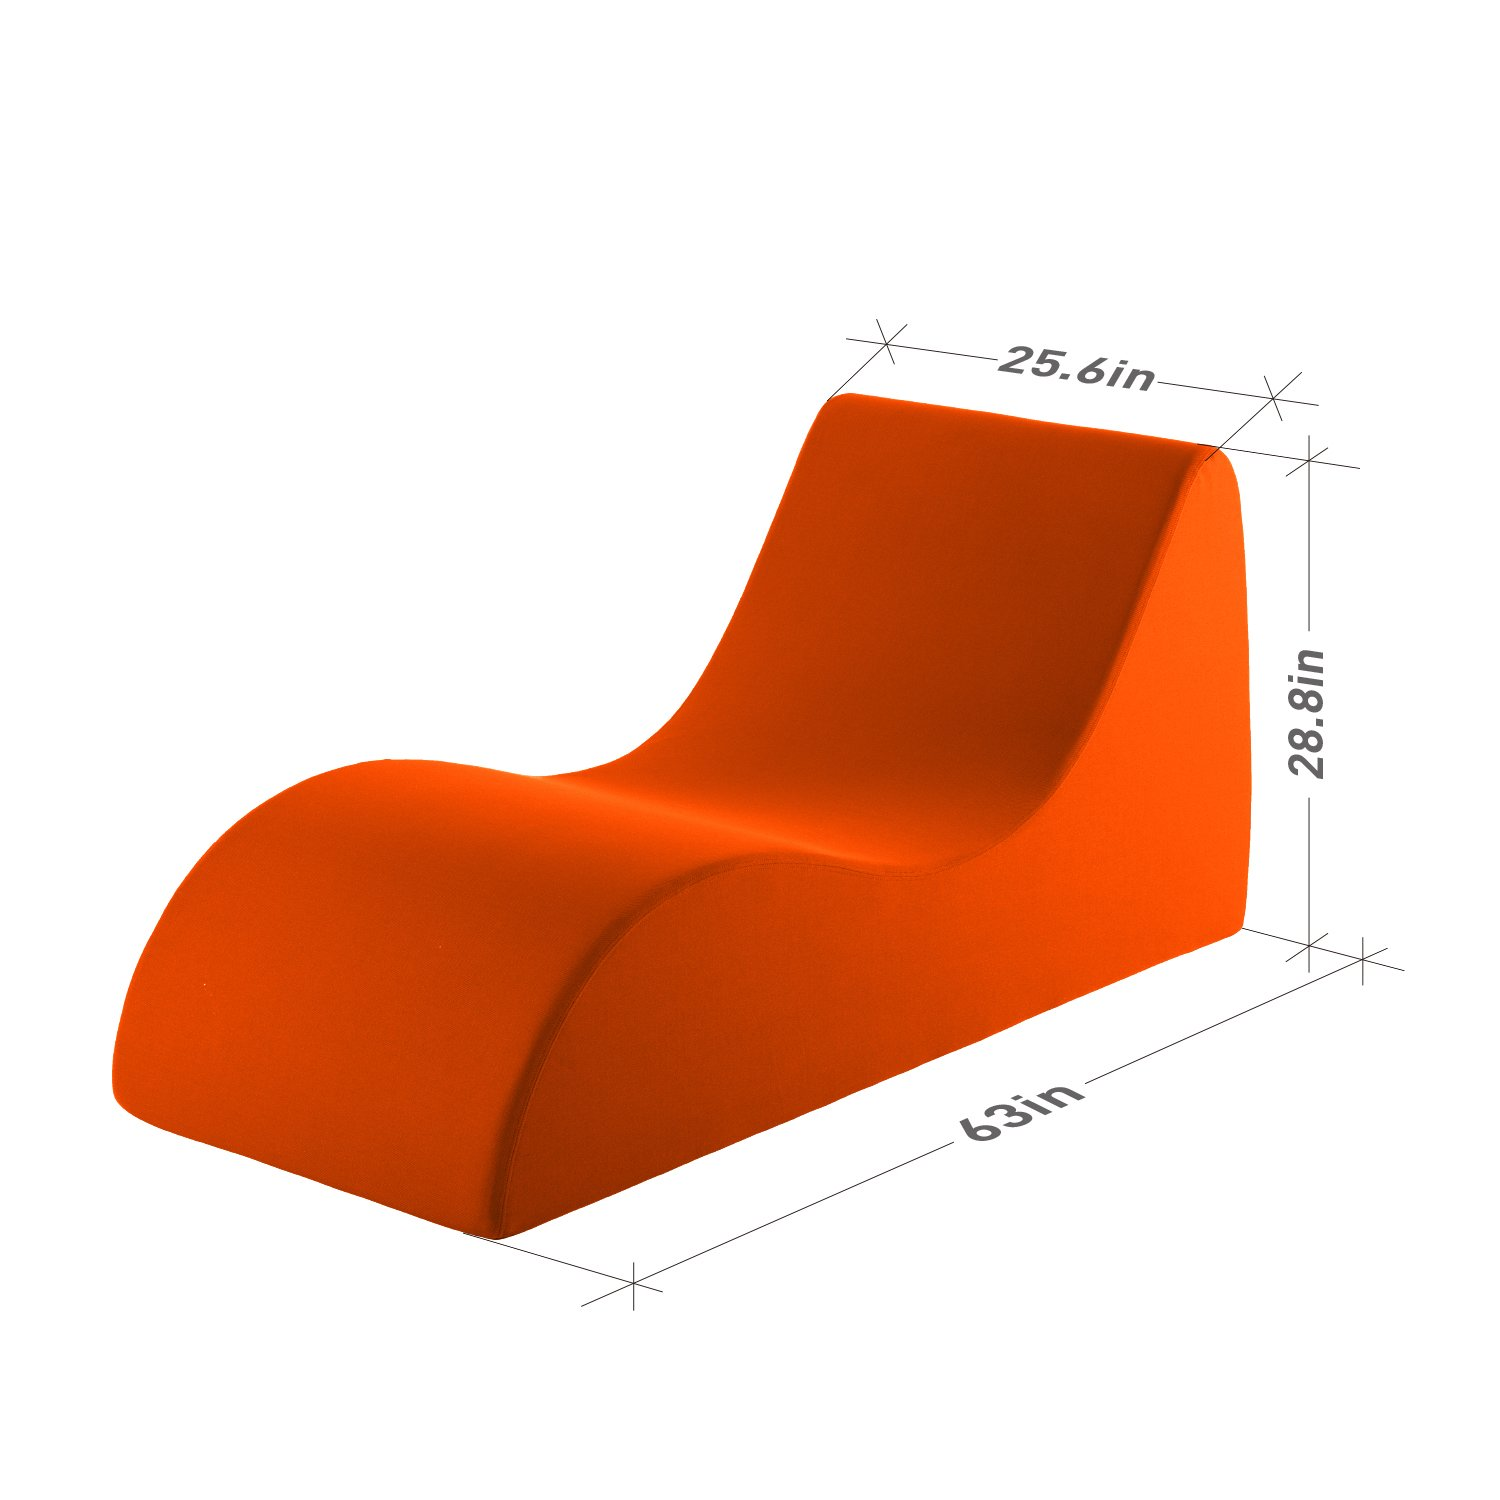 Amazon.com Vivon Comfort Foam / Lounging Accent Chair / Chaise Lounge / for the Bedroom / Family Room / Game Room Orange Kitchen u0026 Dining  sc 1 st  Amazon.com : foam chaise lounge - Sectionals, Sofas & Couches